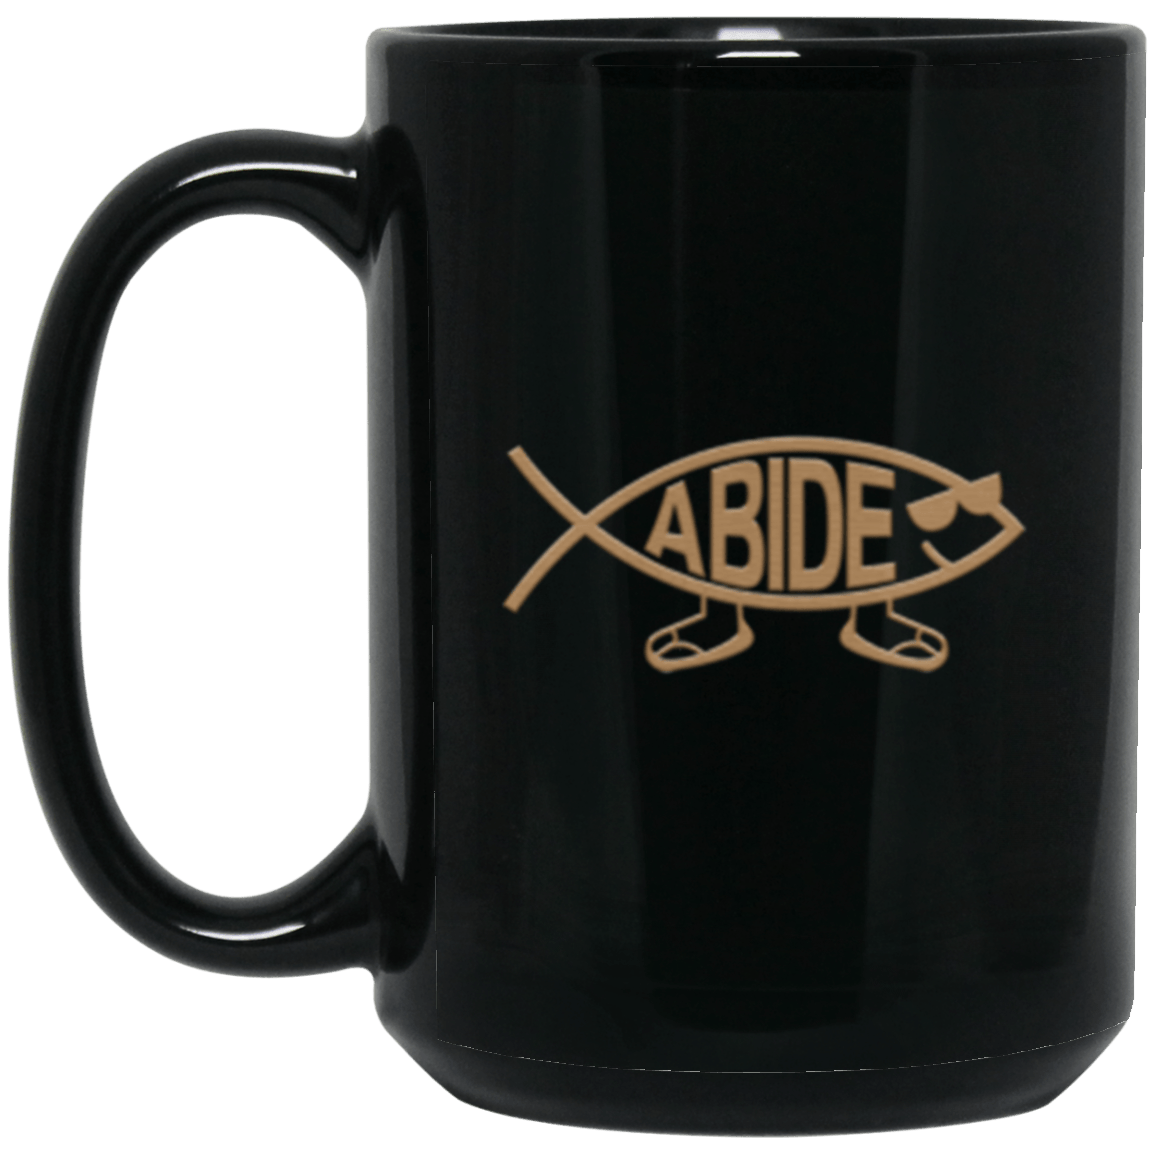 Abide Fish Black Mug 15oz (2-sided)